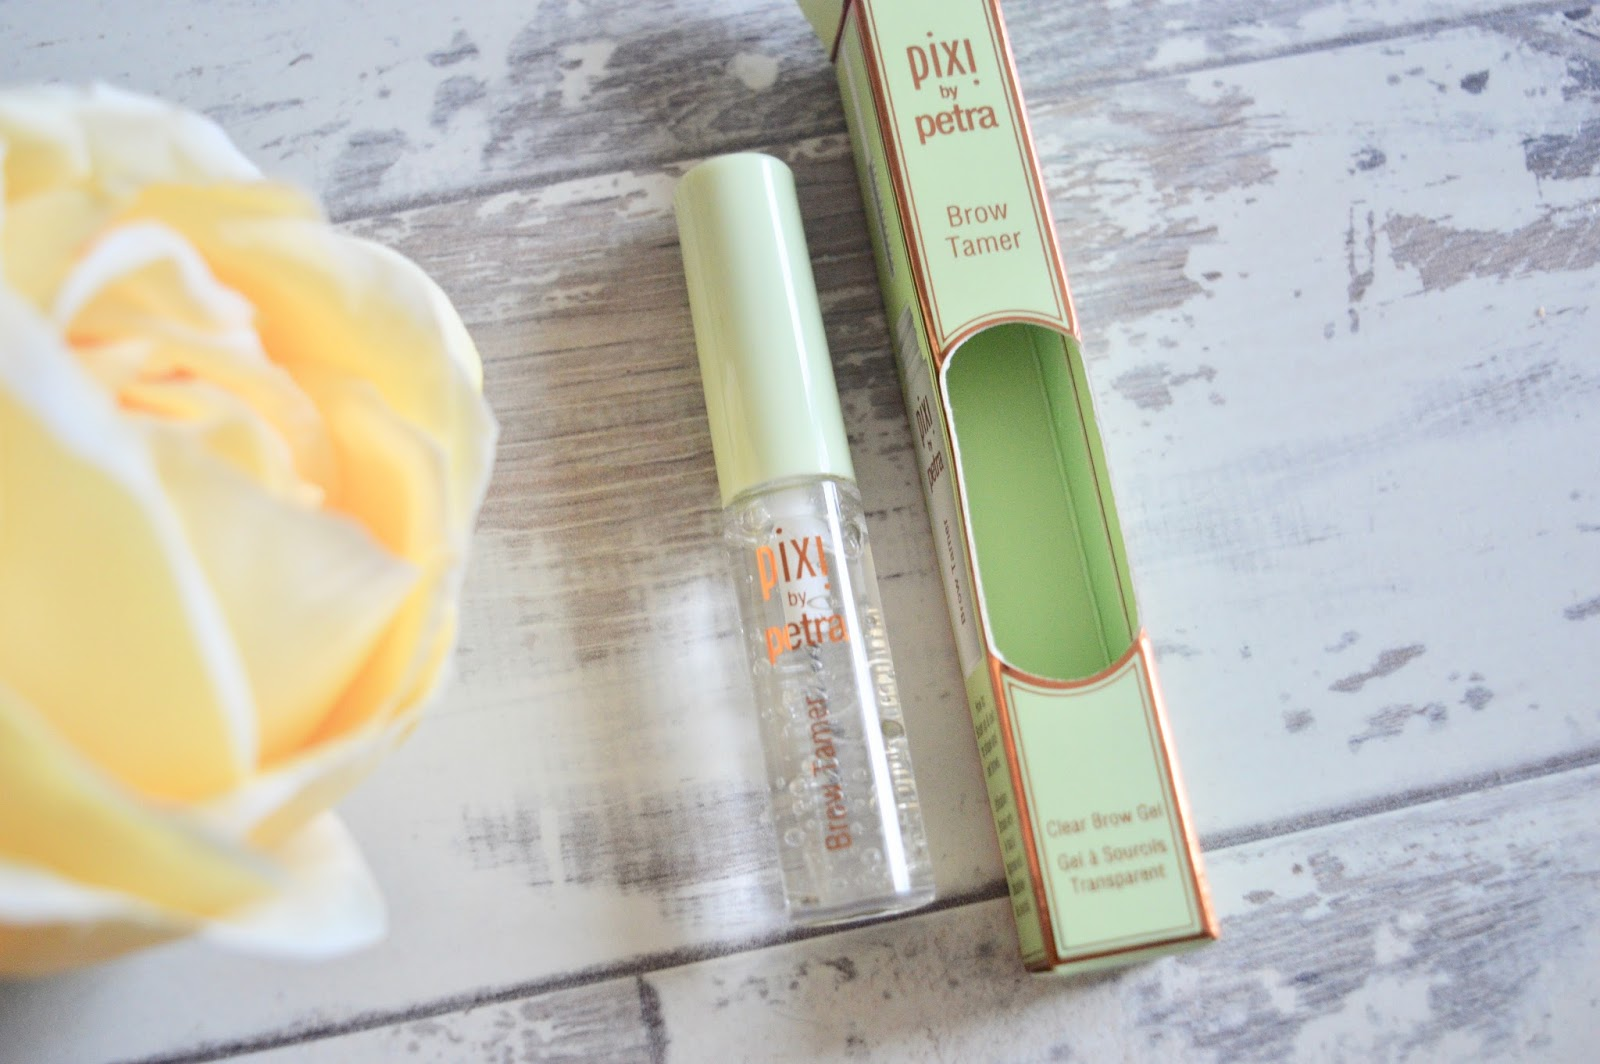 pixi brow tamer review